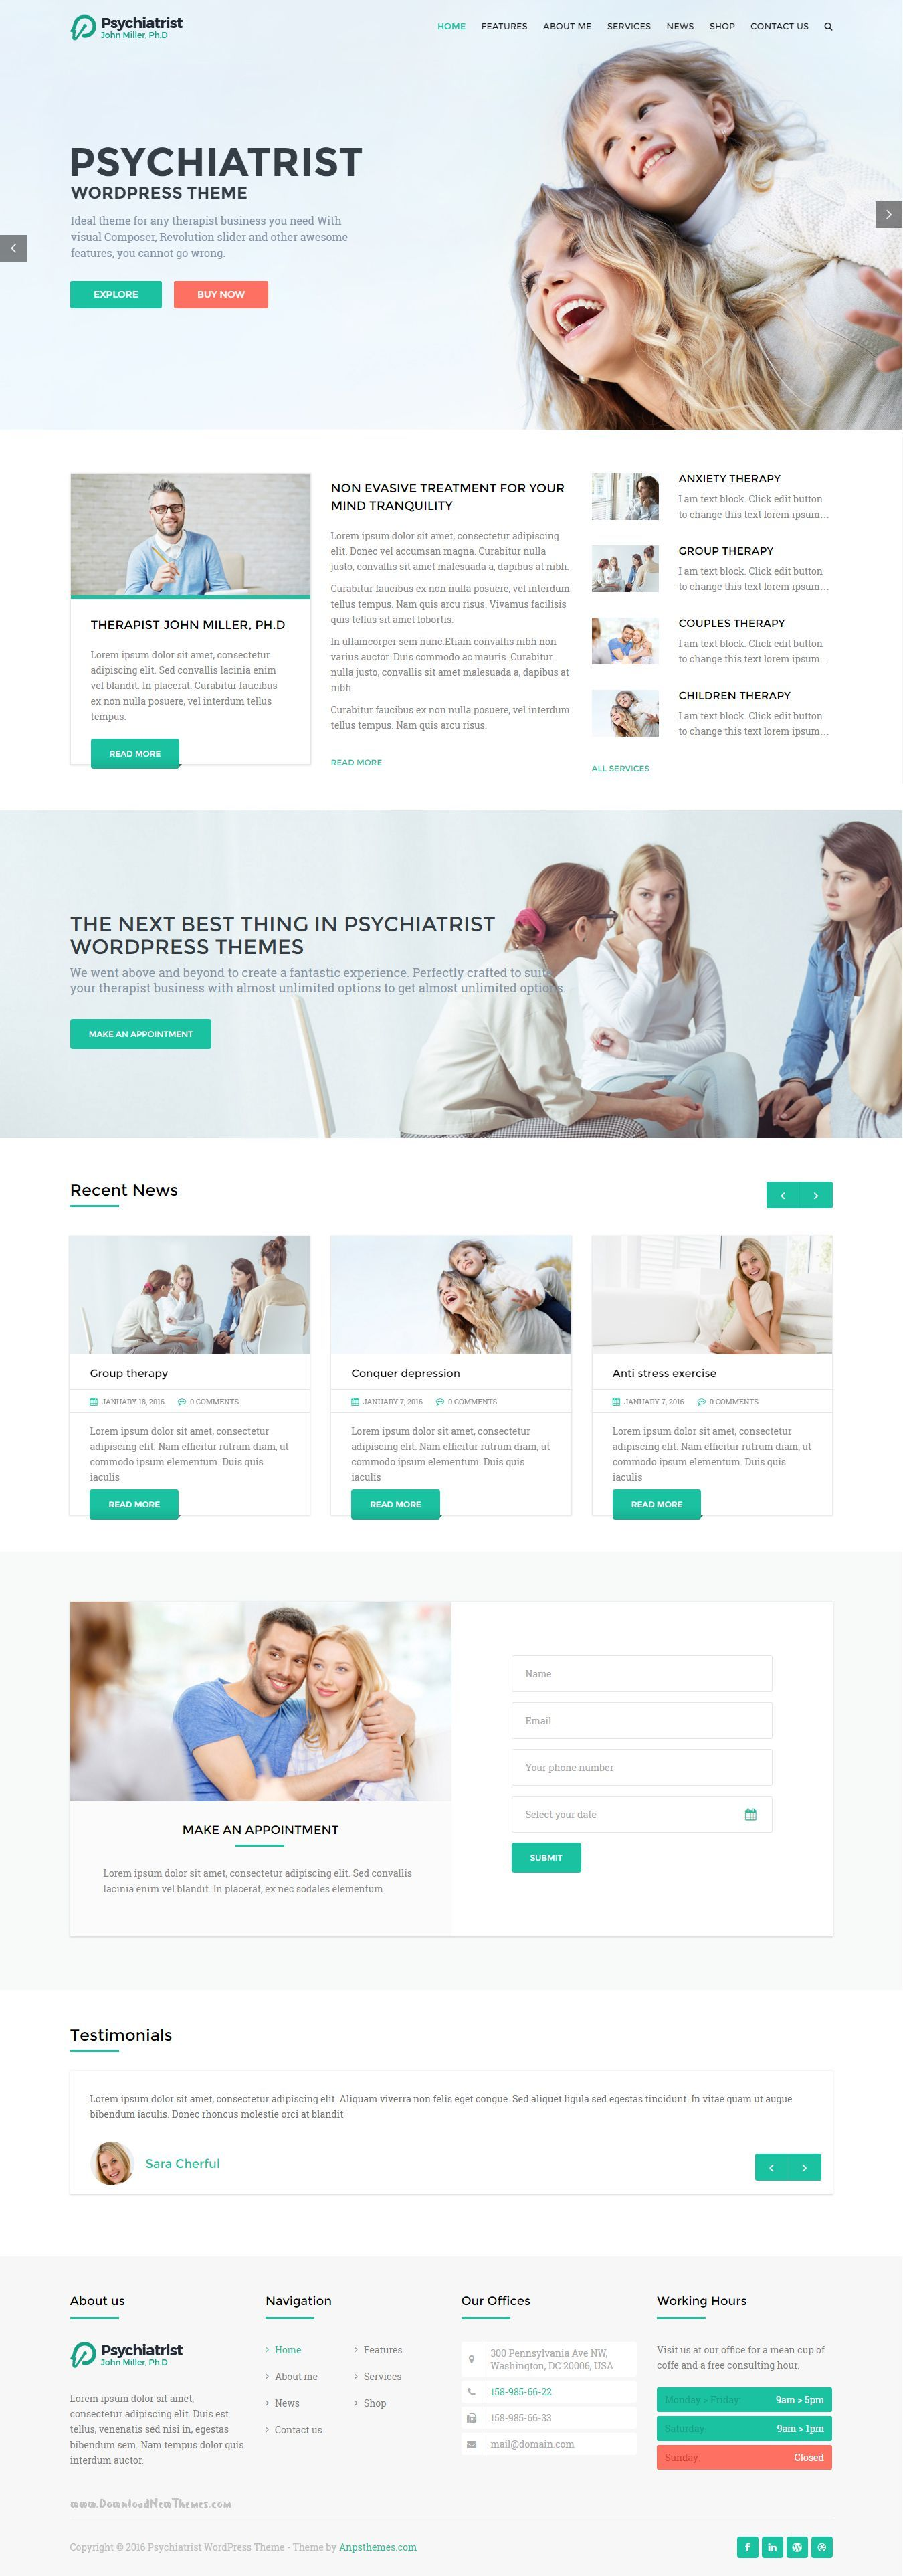 Psychiatrist is a wordpress business theme it is focused on psychiatrist is a wordpress business theme it is focused on building websites in the psychiatry psychology therapist company niches healthcare friedricerecipe Choice Image